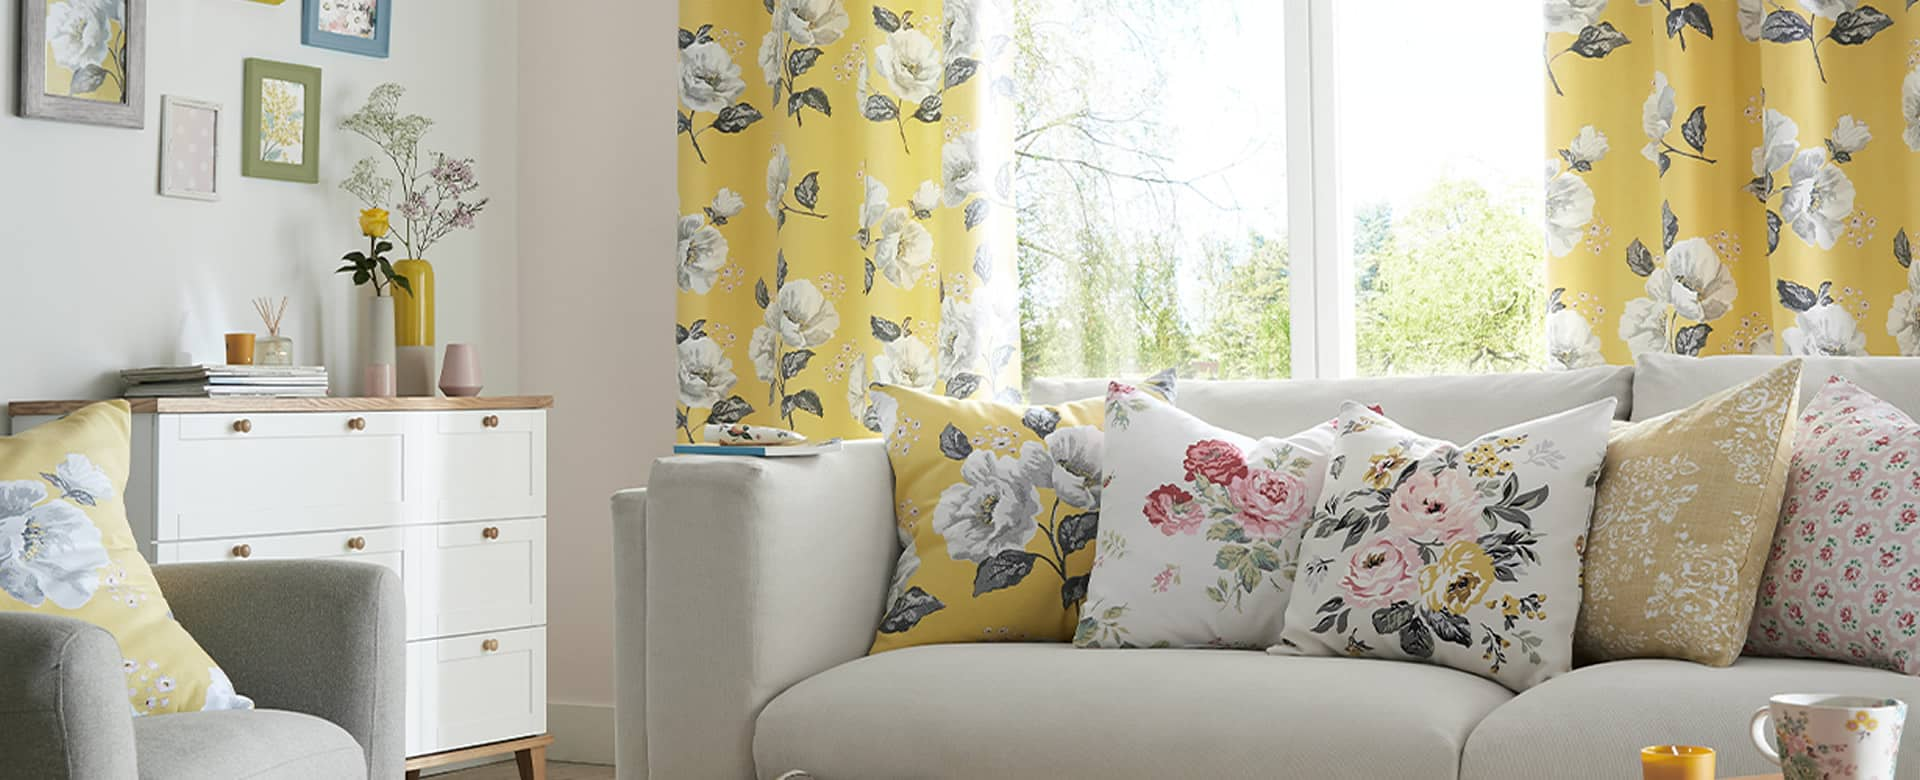 New for 2020 - Cath Kidson range of Made to Measure Curtains & Blinds